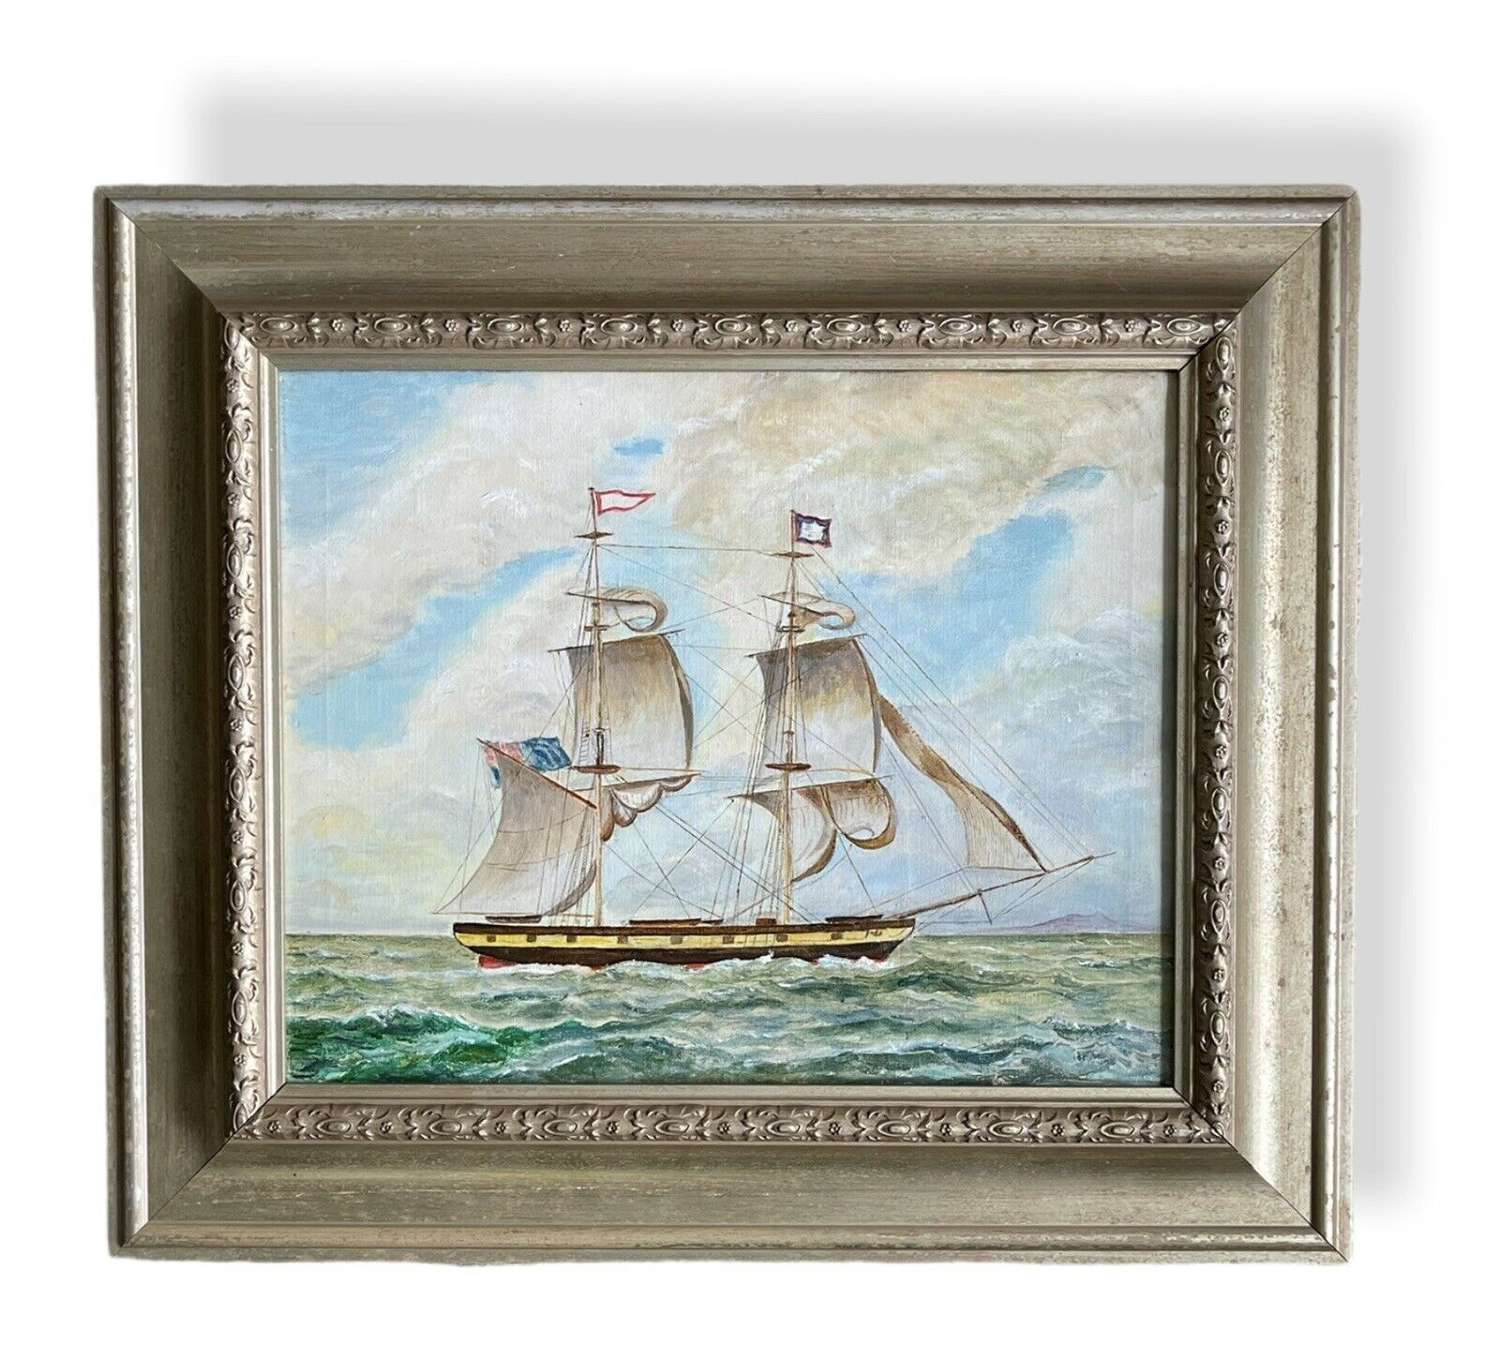 Original oil painting of a Galleon